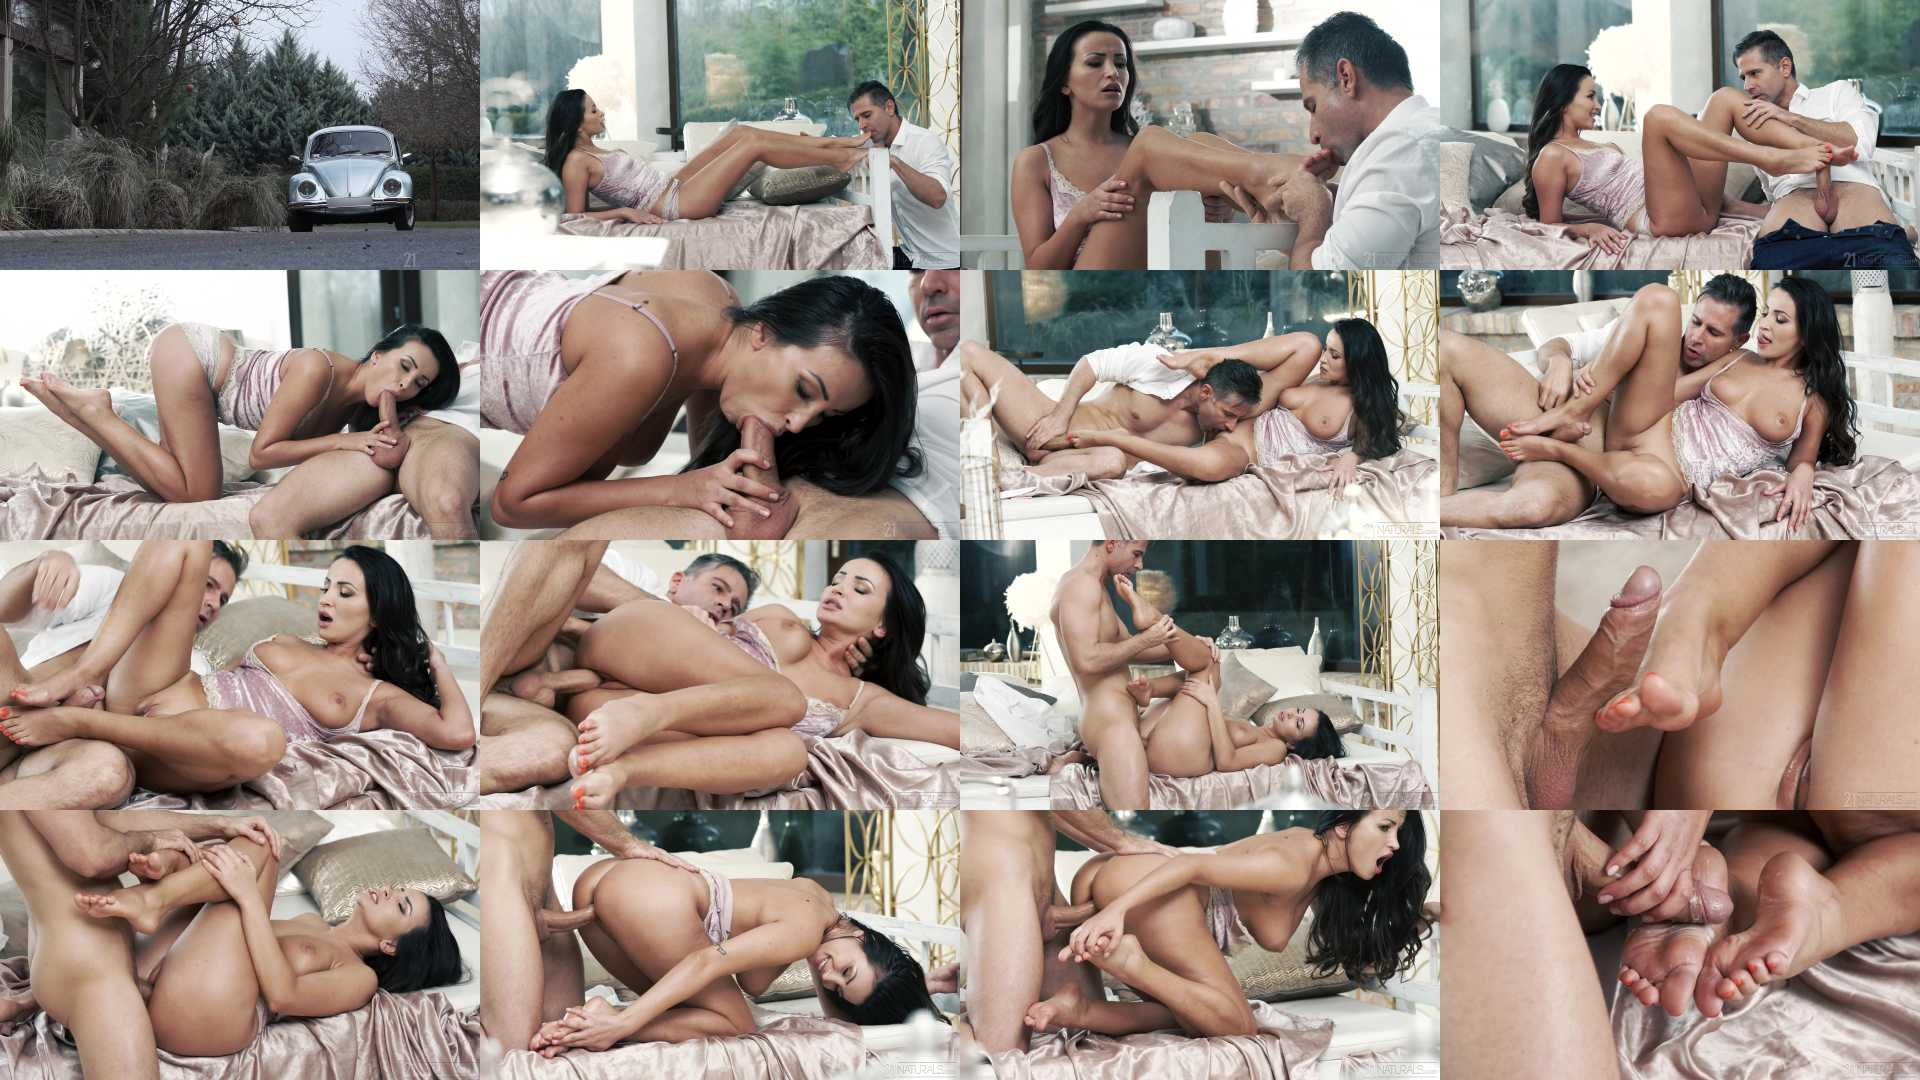 Alyssia Kent in The Power Of The Feet